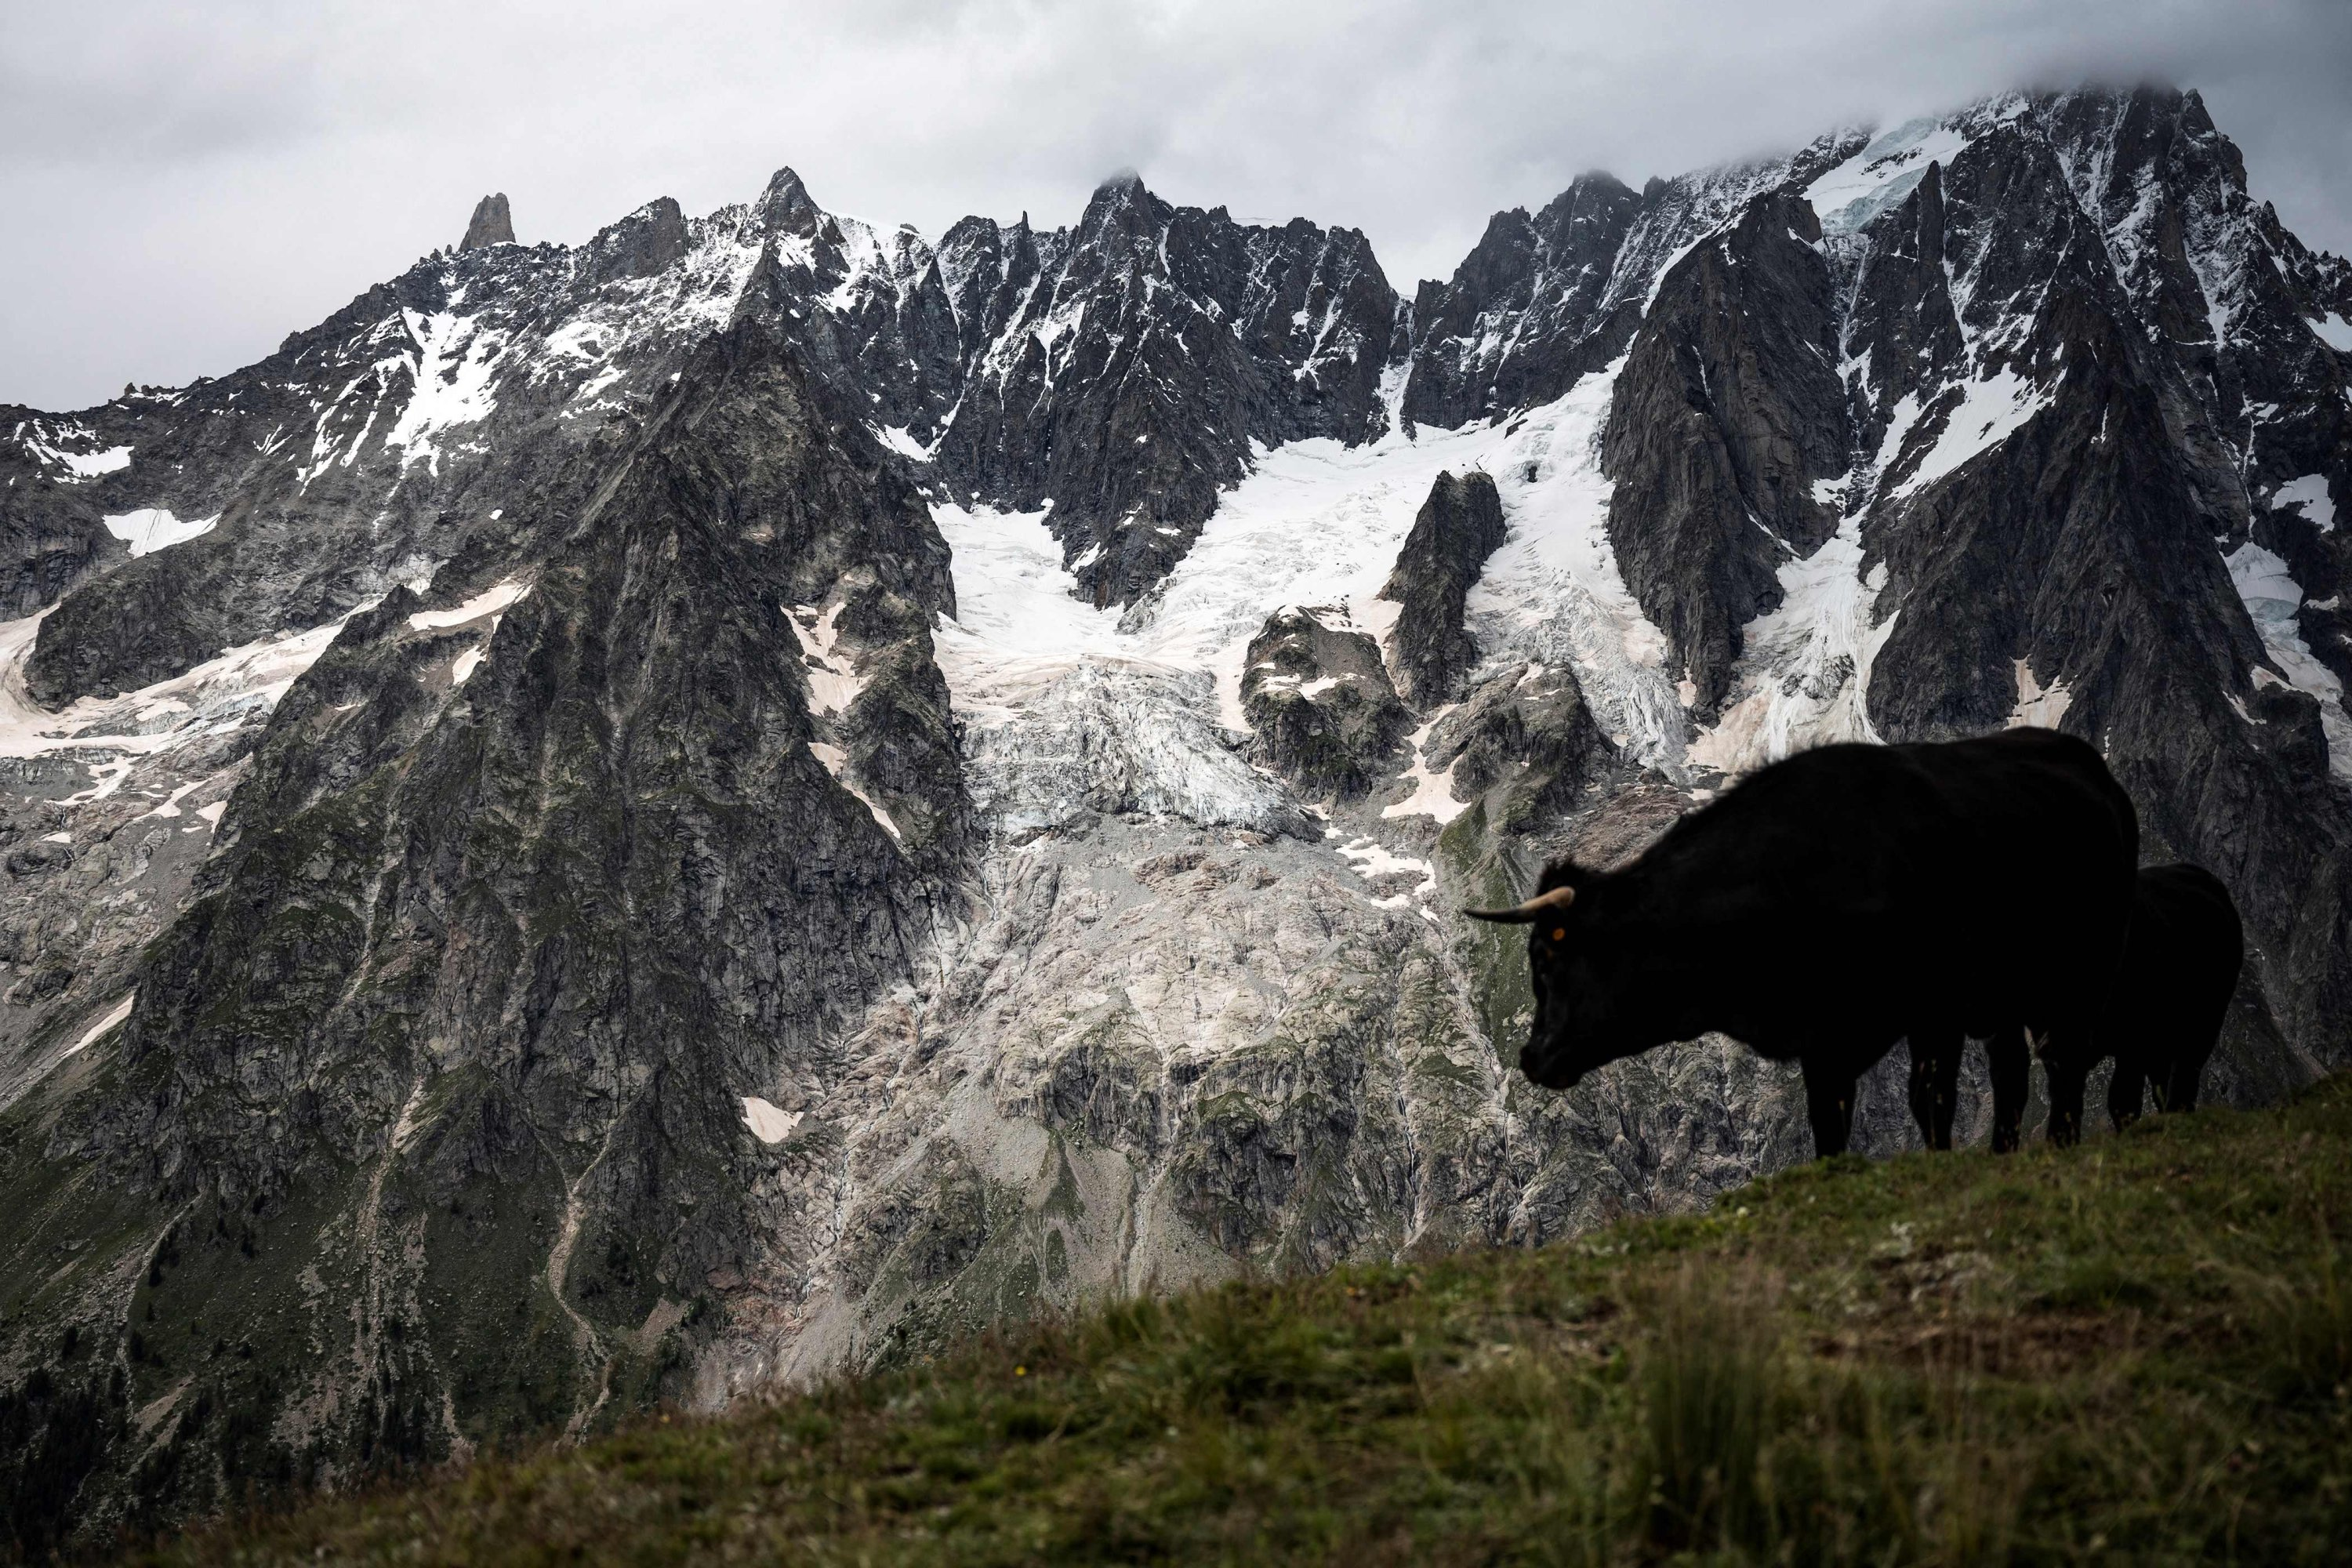 A cow grazes near the Planpincieux Glacier (C) on the Mont La Sax in Courmayeur, Alps Region, north-western Italy, on Aug. 3, 2021. (AFP Photo)